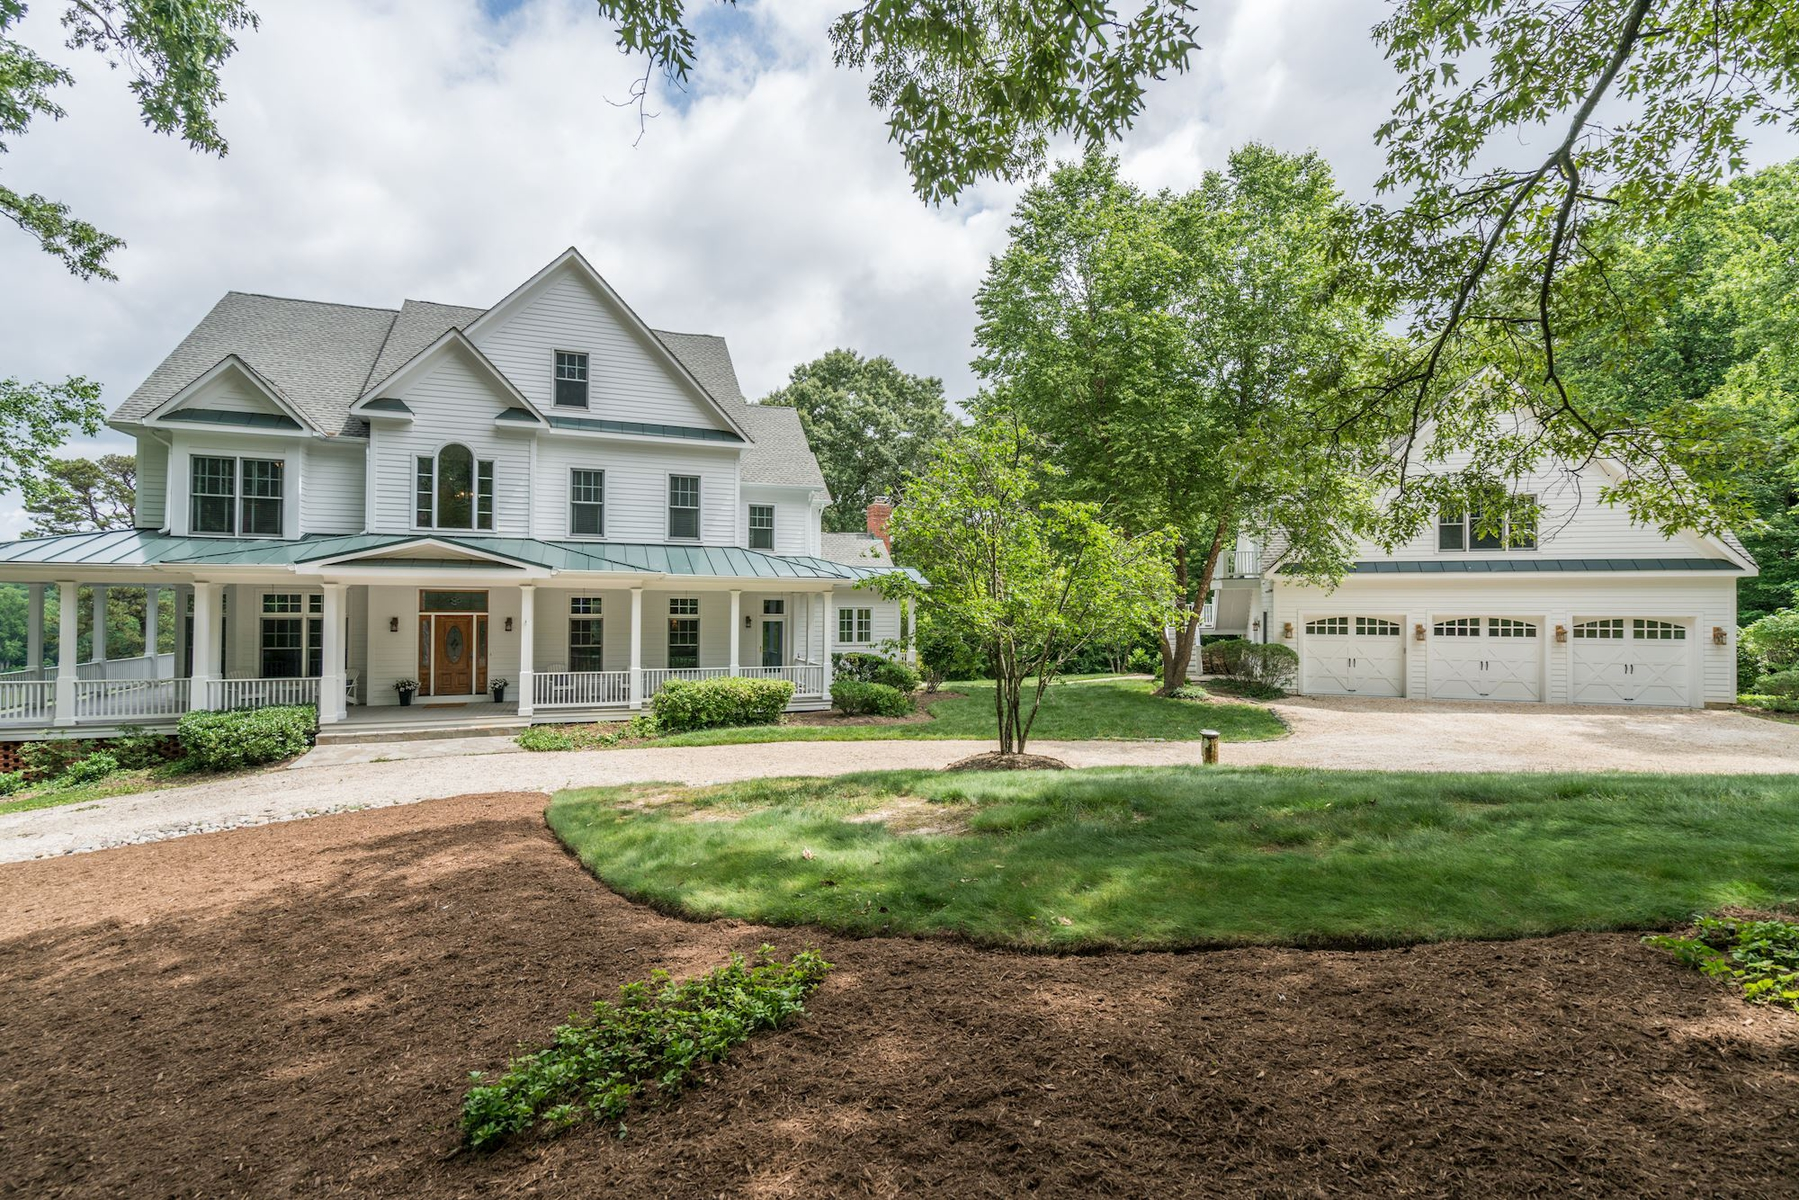 Single Family Home for Sale at Frosty Meadows 12231 Chapel Rd Clifton, Virginia 20124 United States